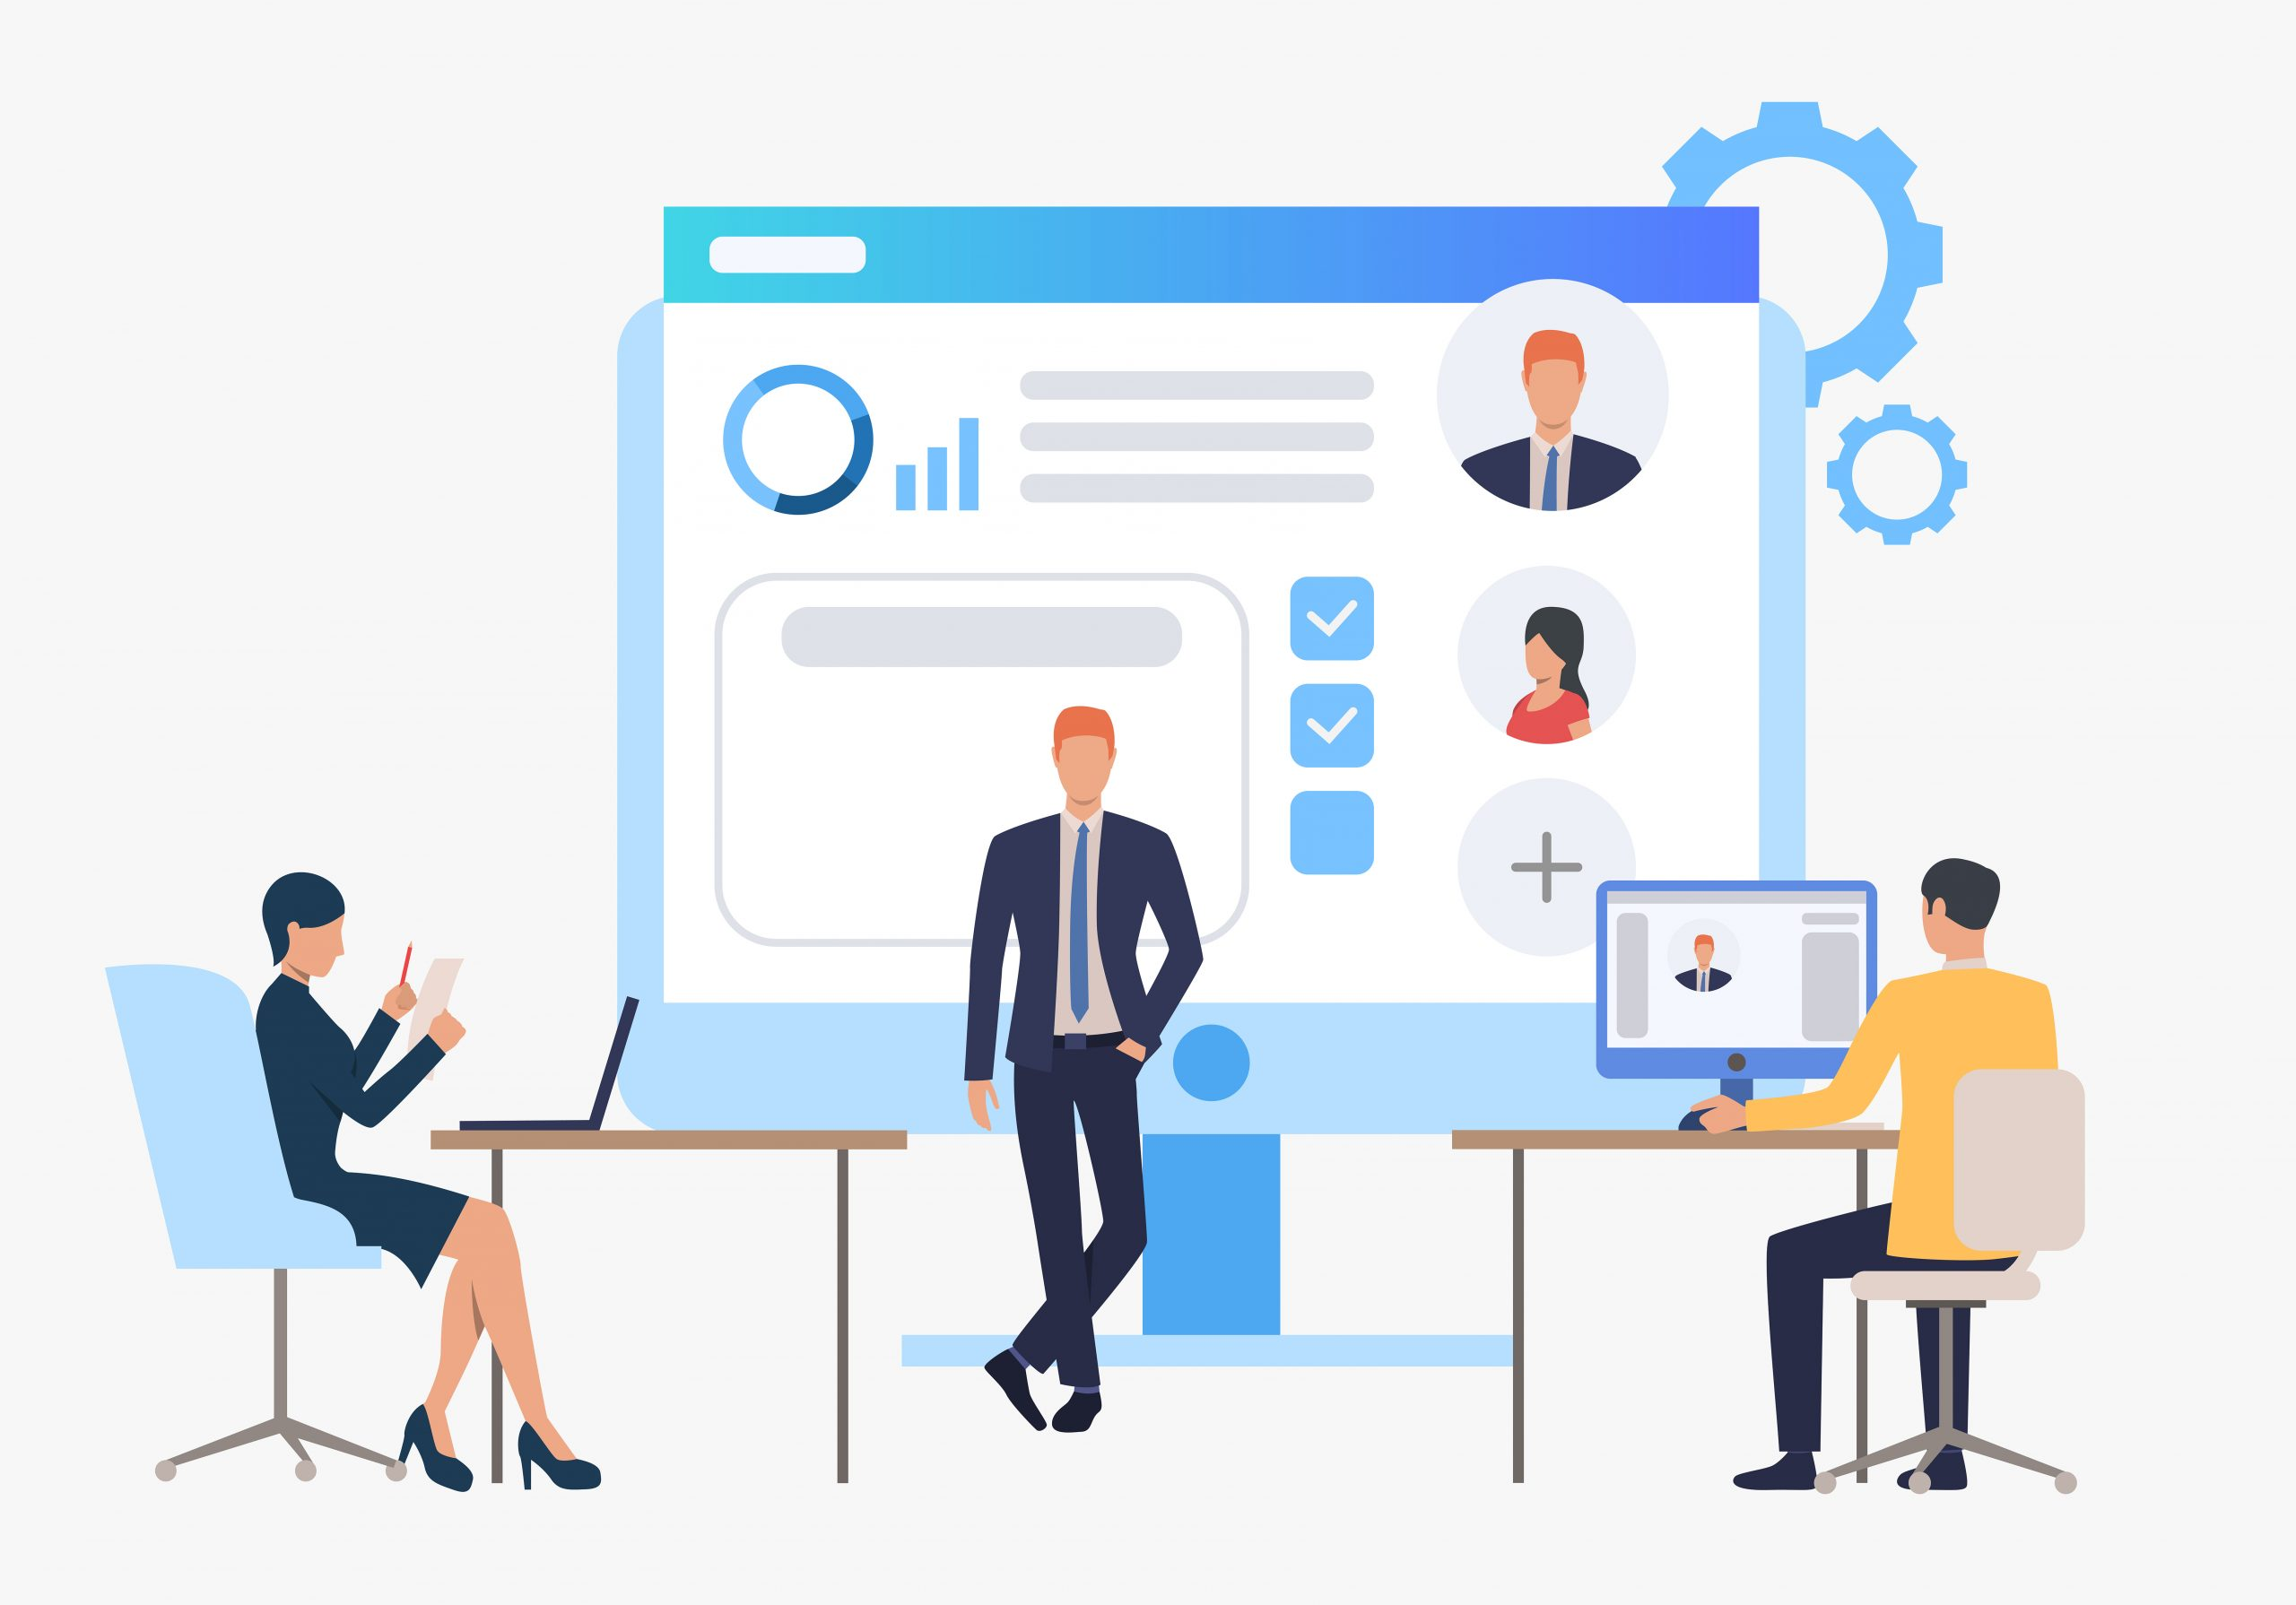 Hiring agency, candidates and job interview. Personnel, hr, employment concept, presentation slide template. Can be used for topics like business, recruitment, human resources